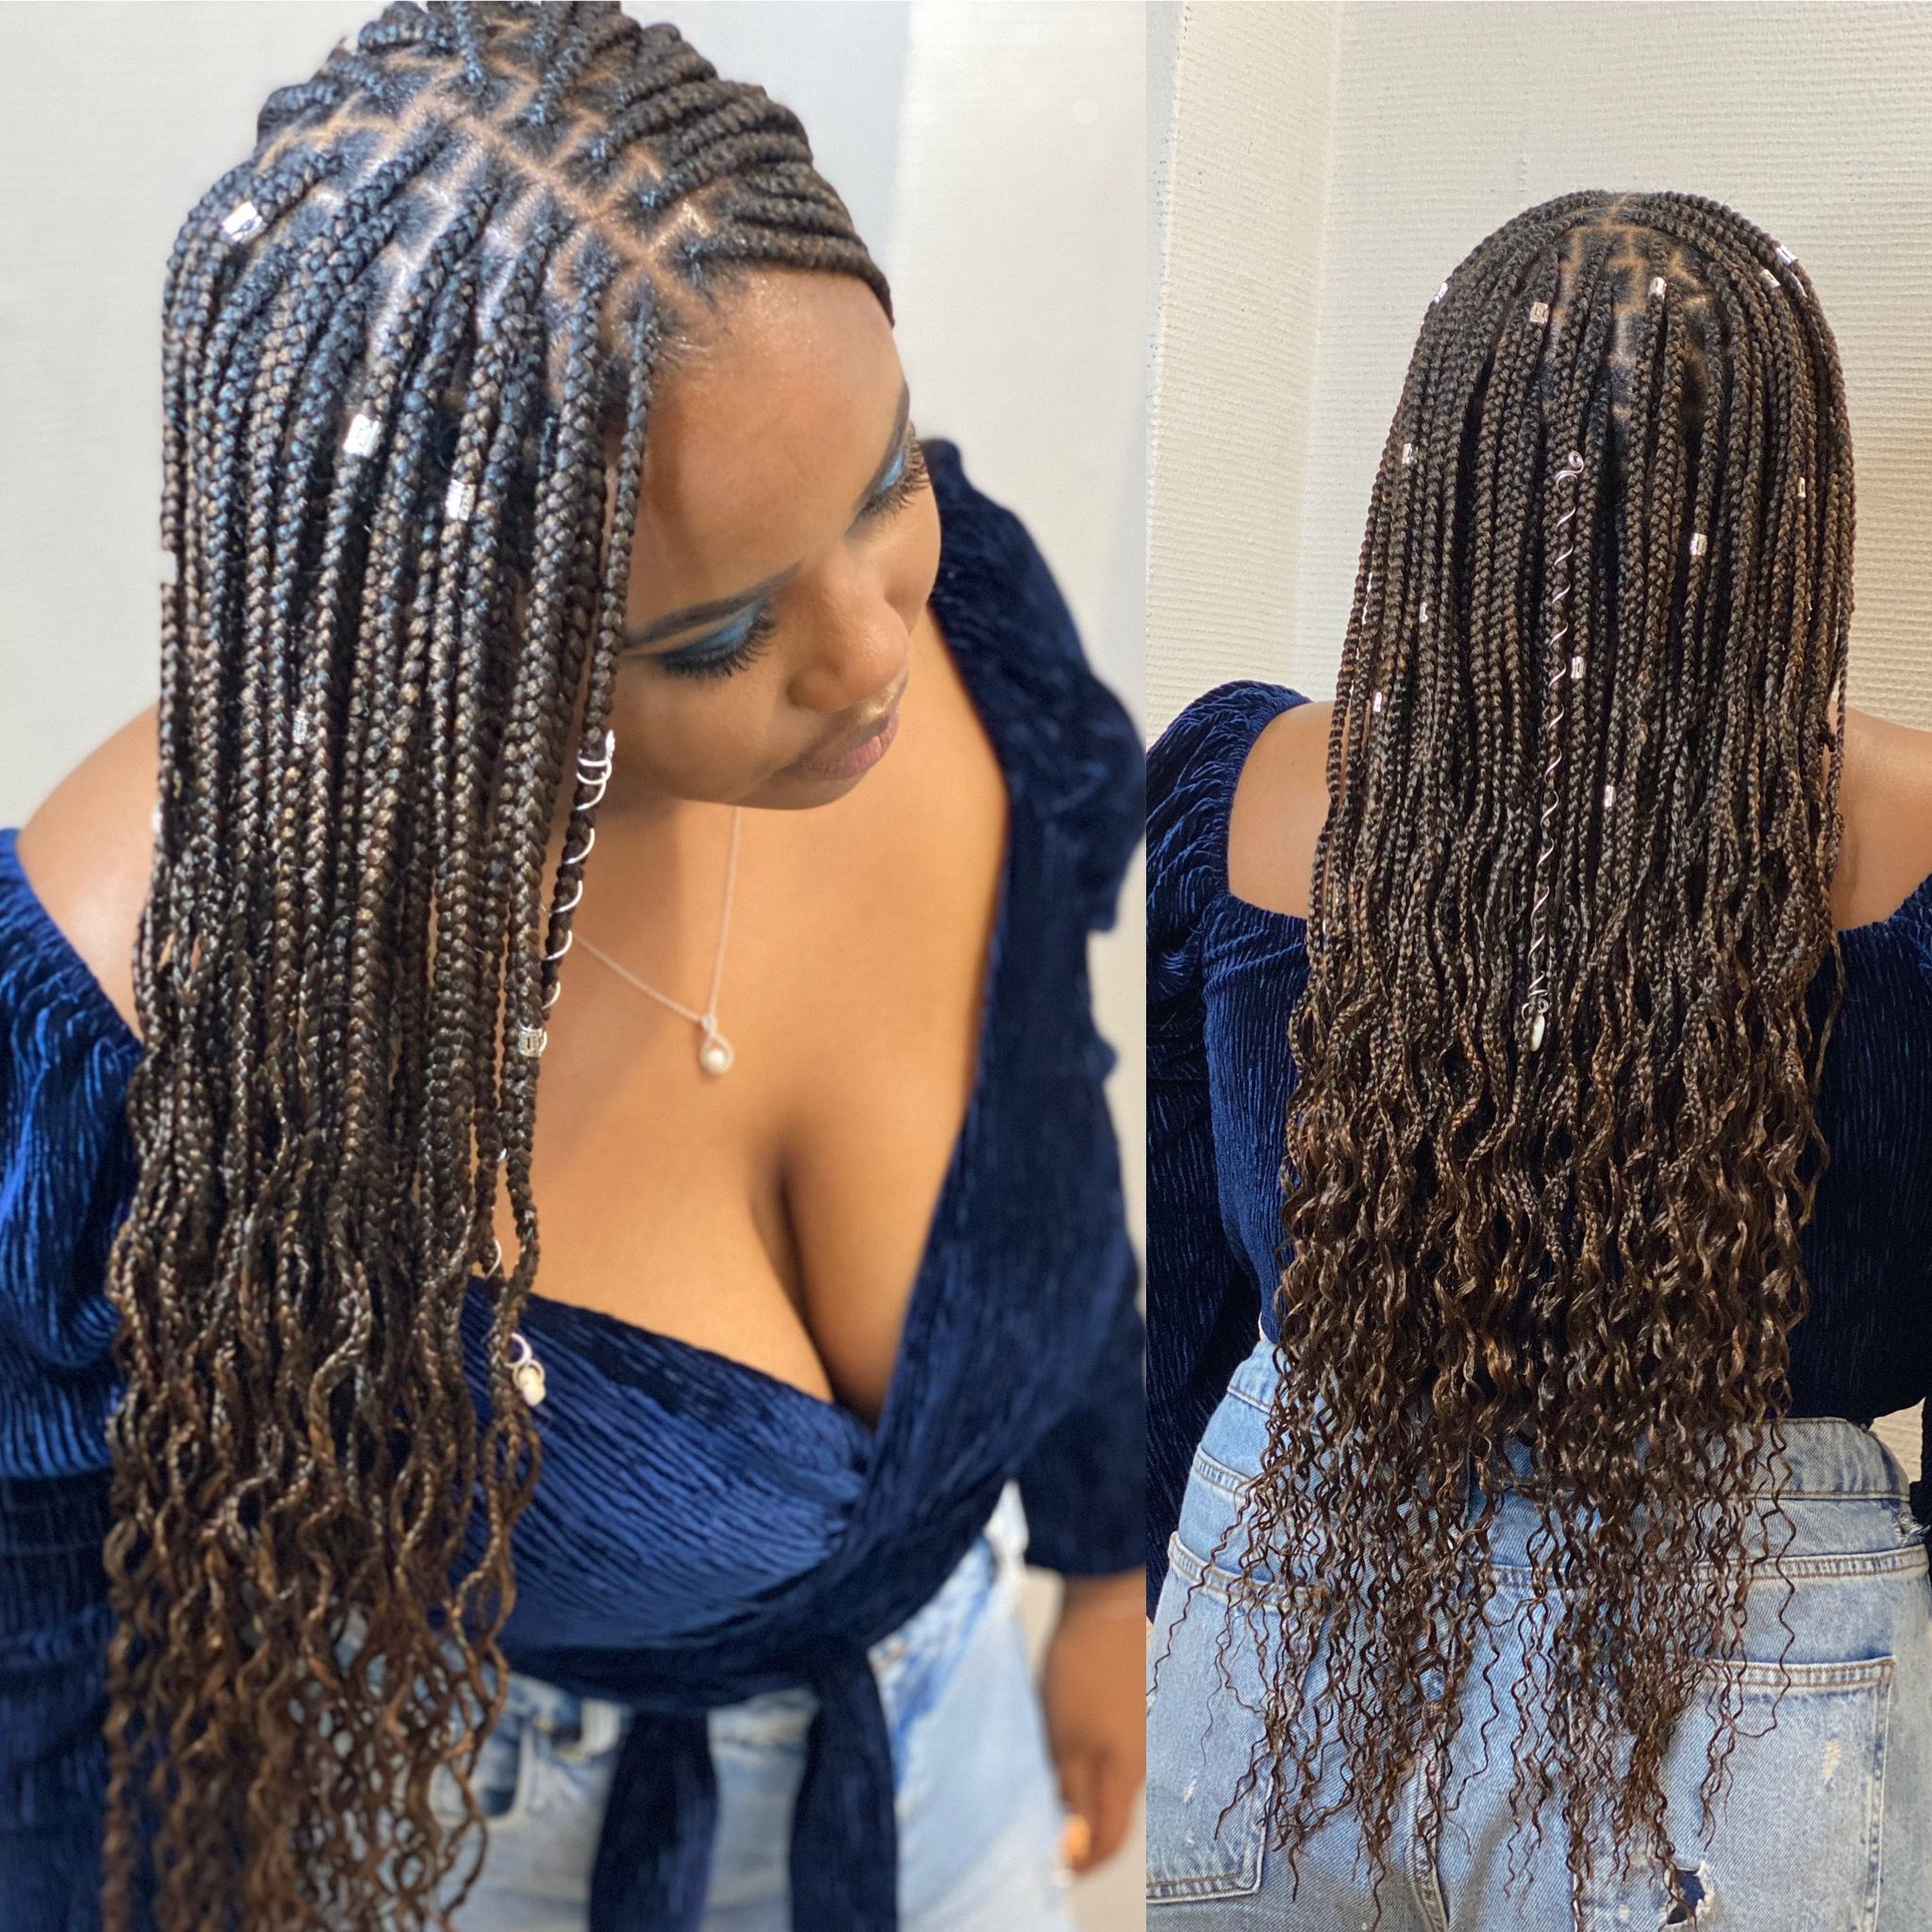 salon de coiffure afro tresse tresses box braids crochet braids vanilles tissages paris 75 77 78 91 92 93 94 95 KTMUUFBC